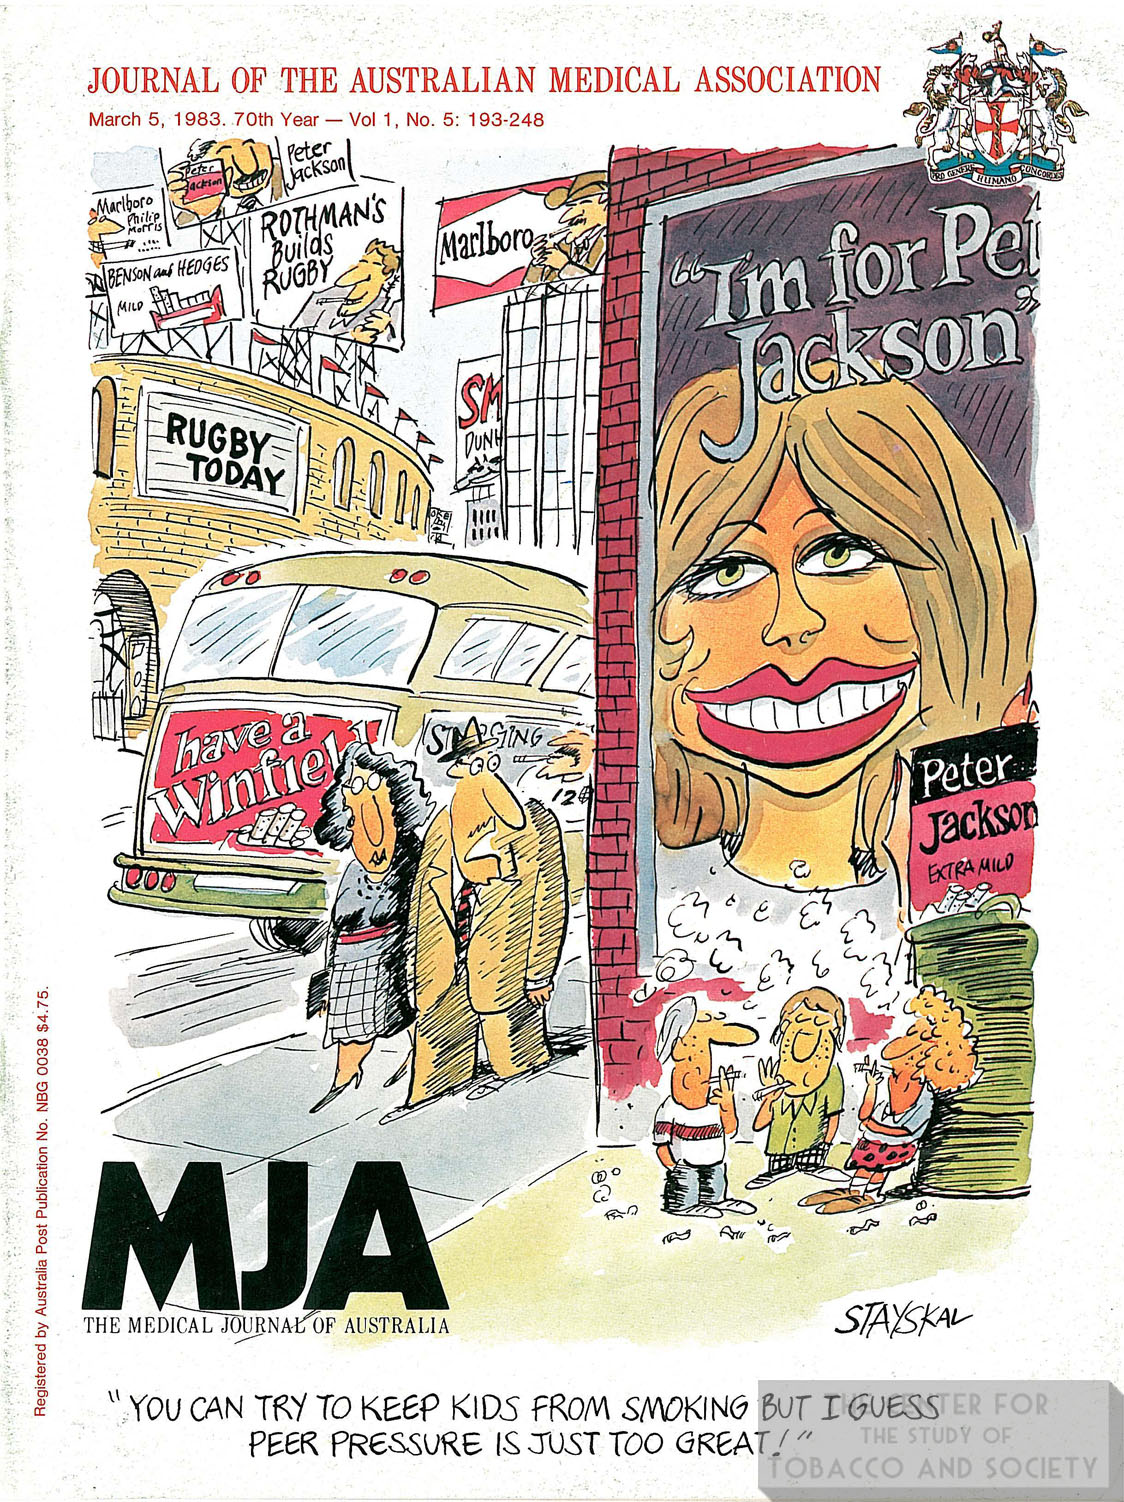 1983 03 05 MJA Front Cover 1